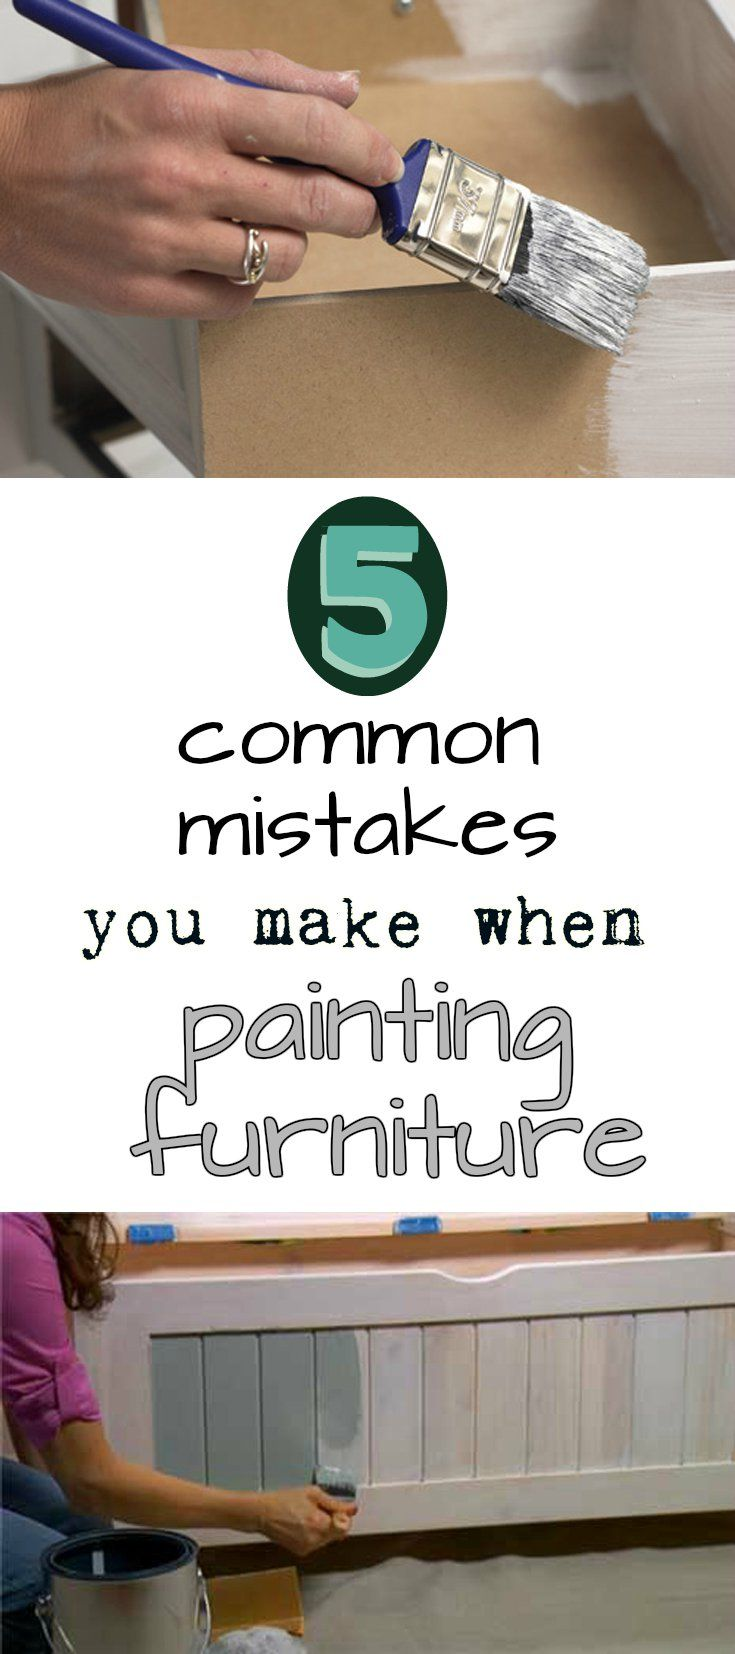 5 common mistakes you make when painting furniture.